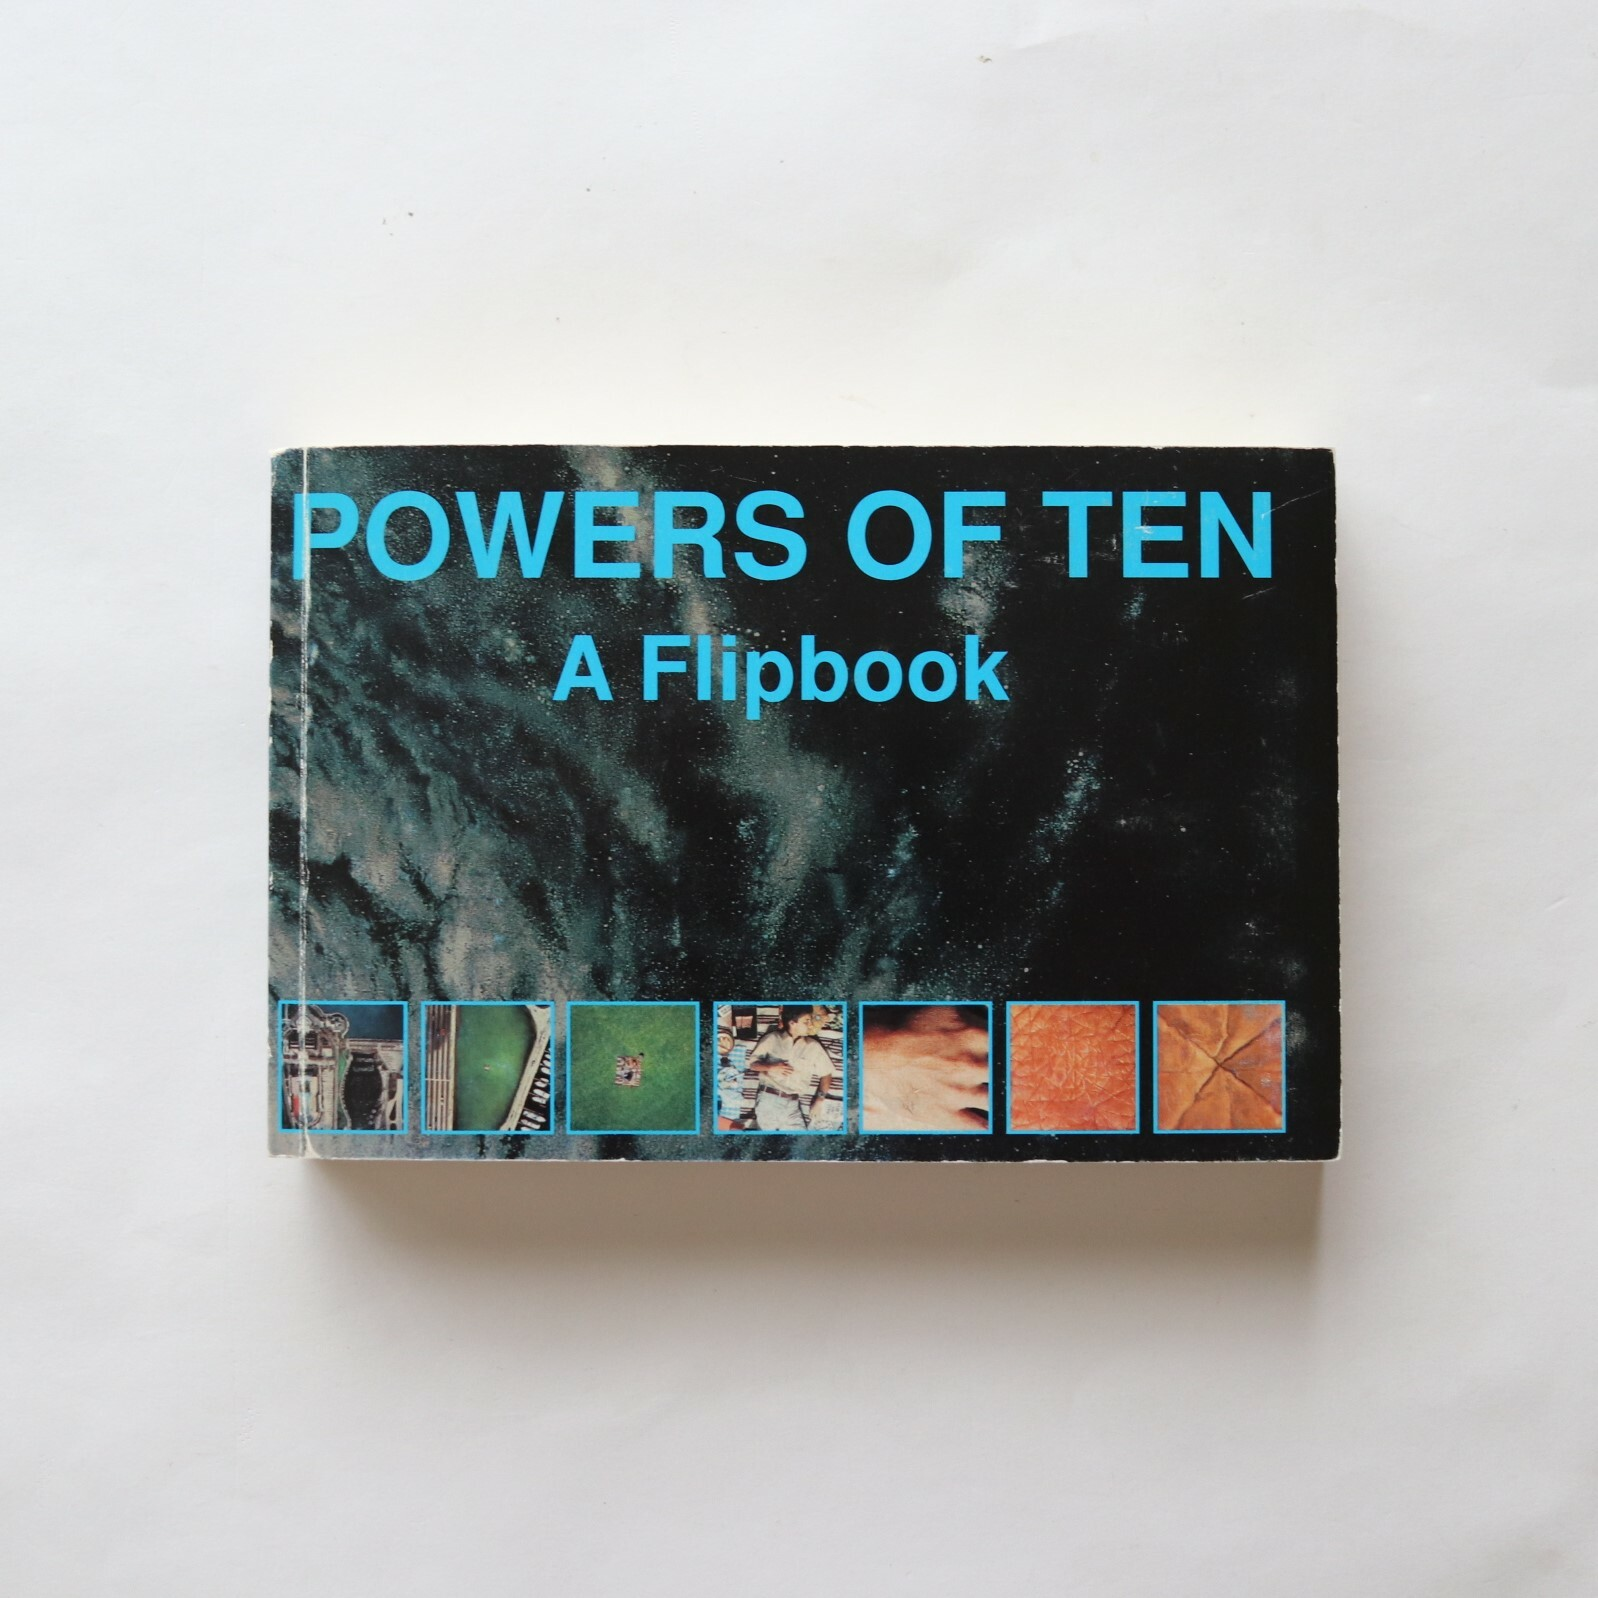 Powers of Ten: A Flipbook / Charles Eames, Ray Eames